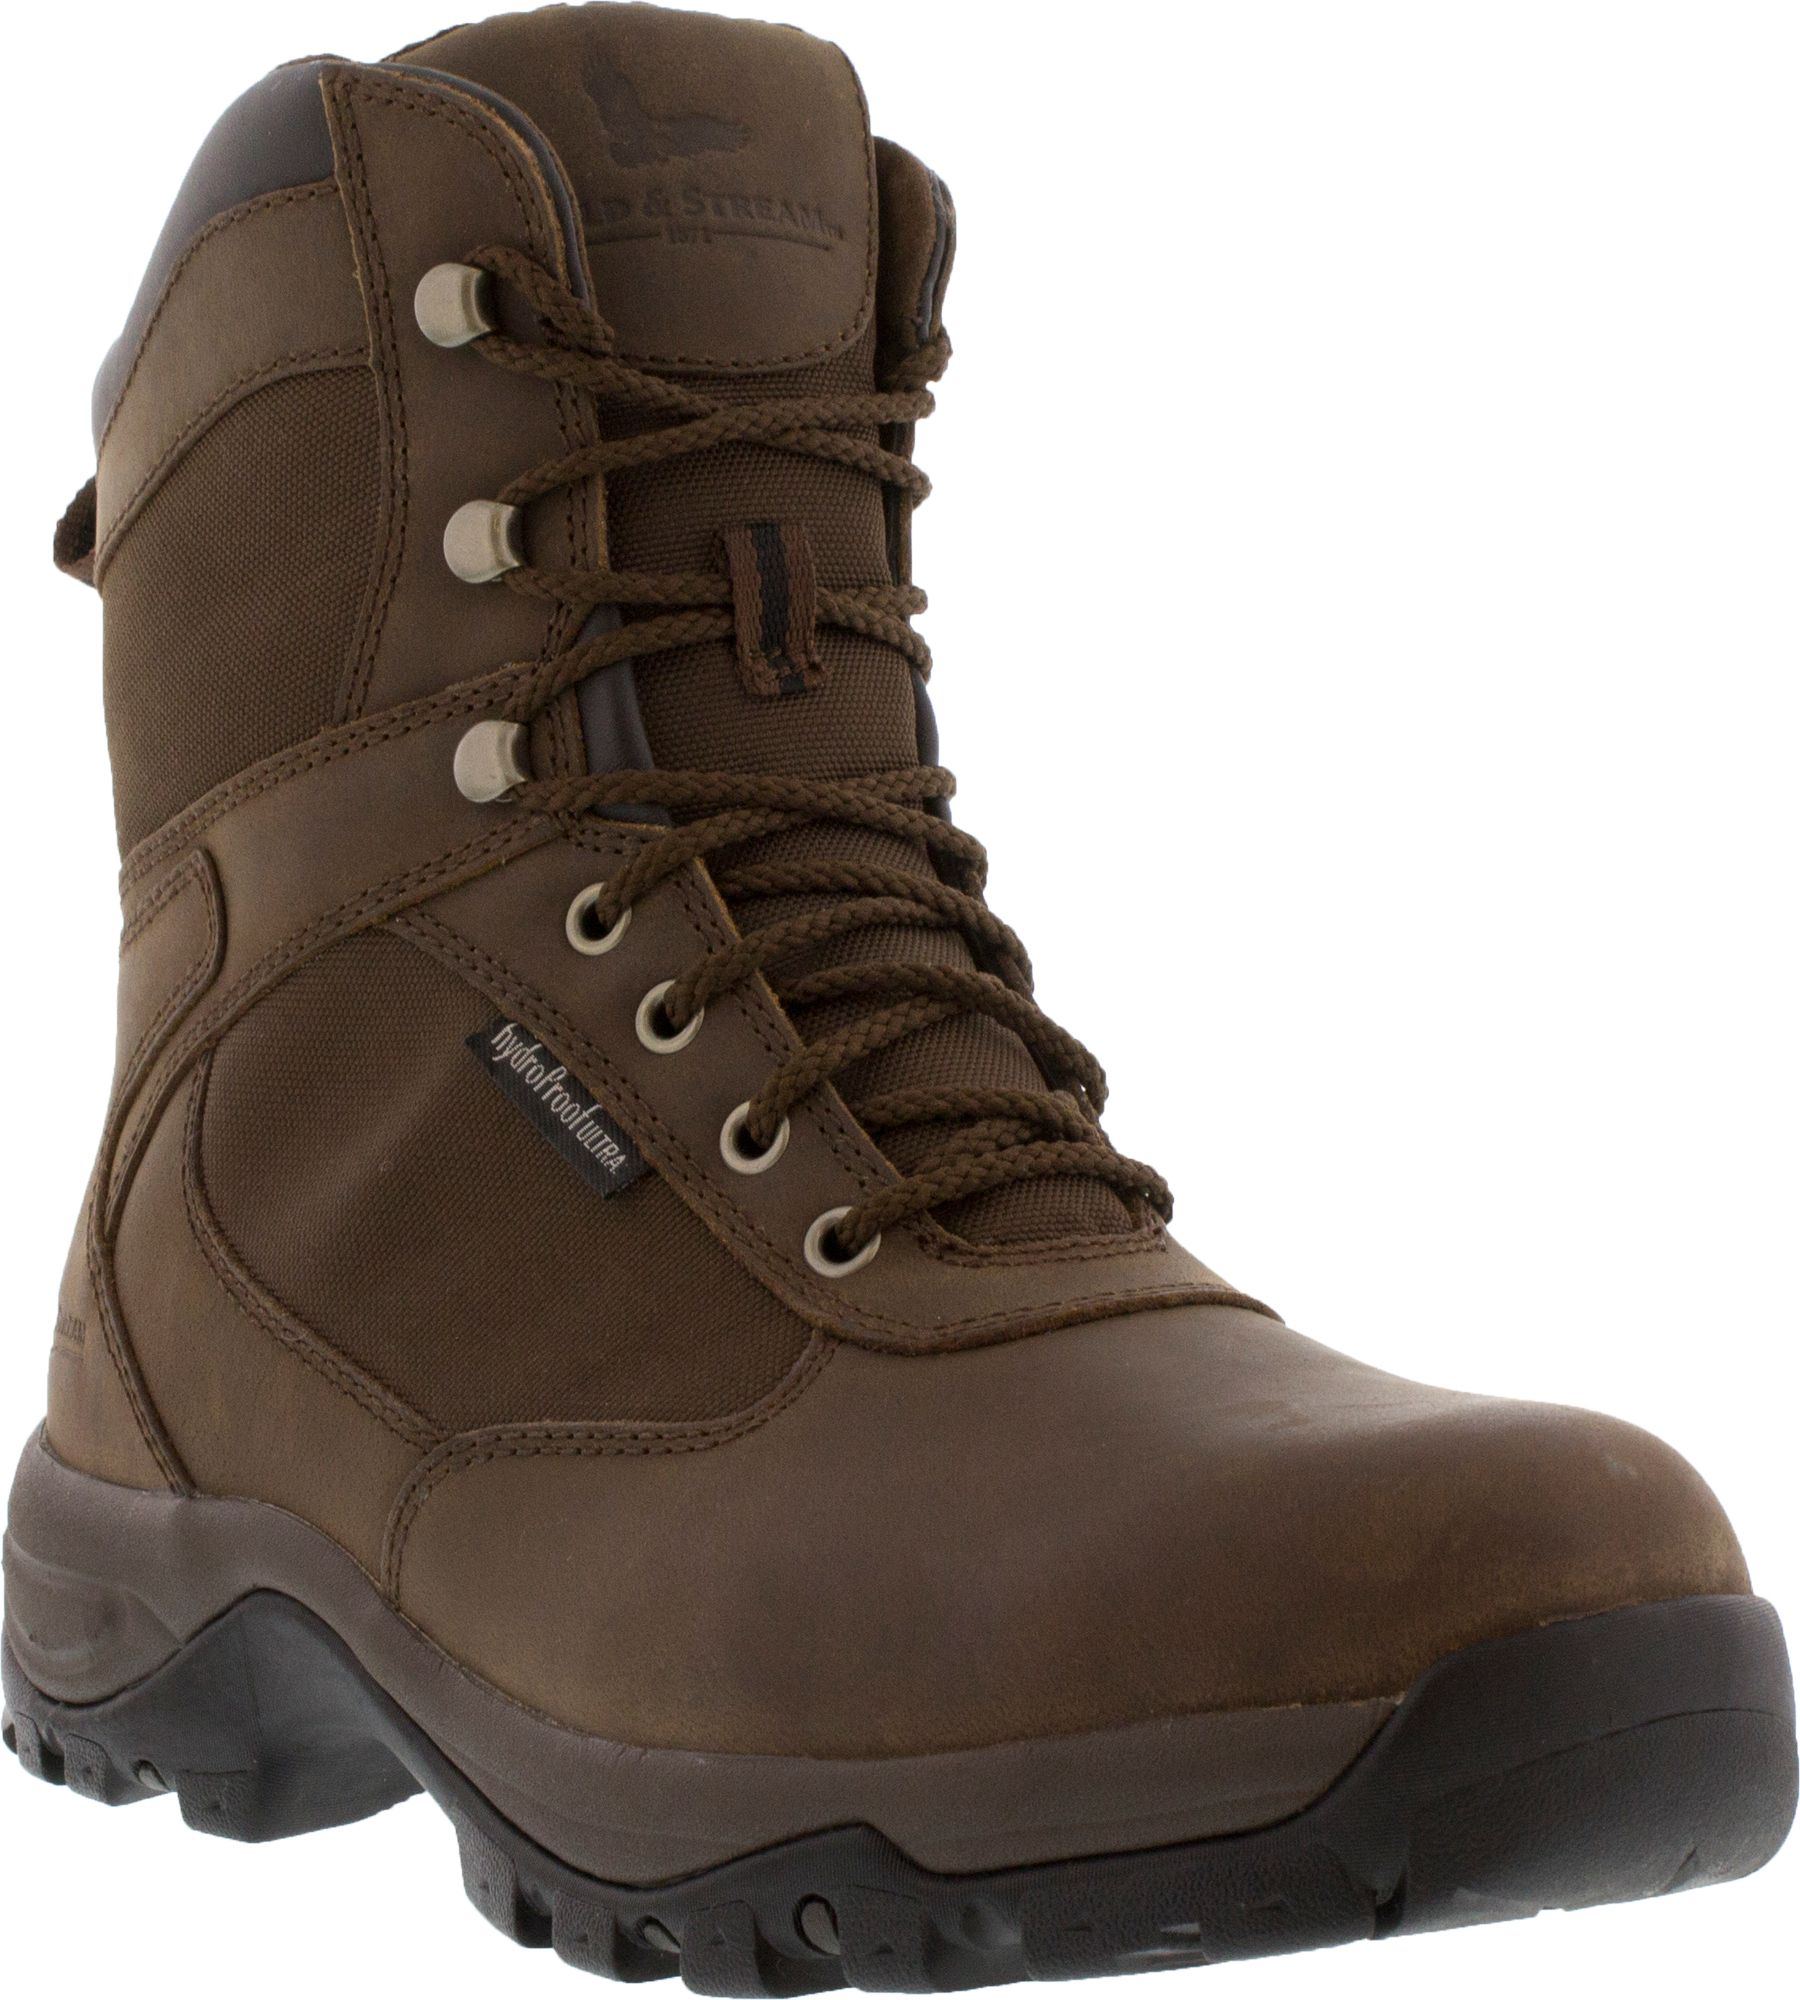 Hunting Boots | DICK'S Sporting Goods